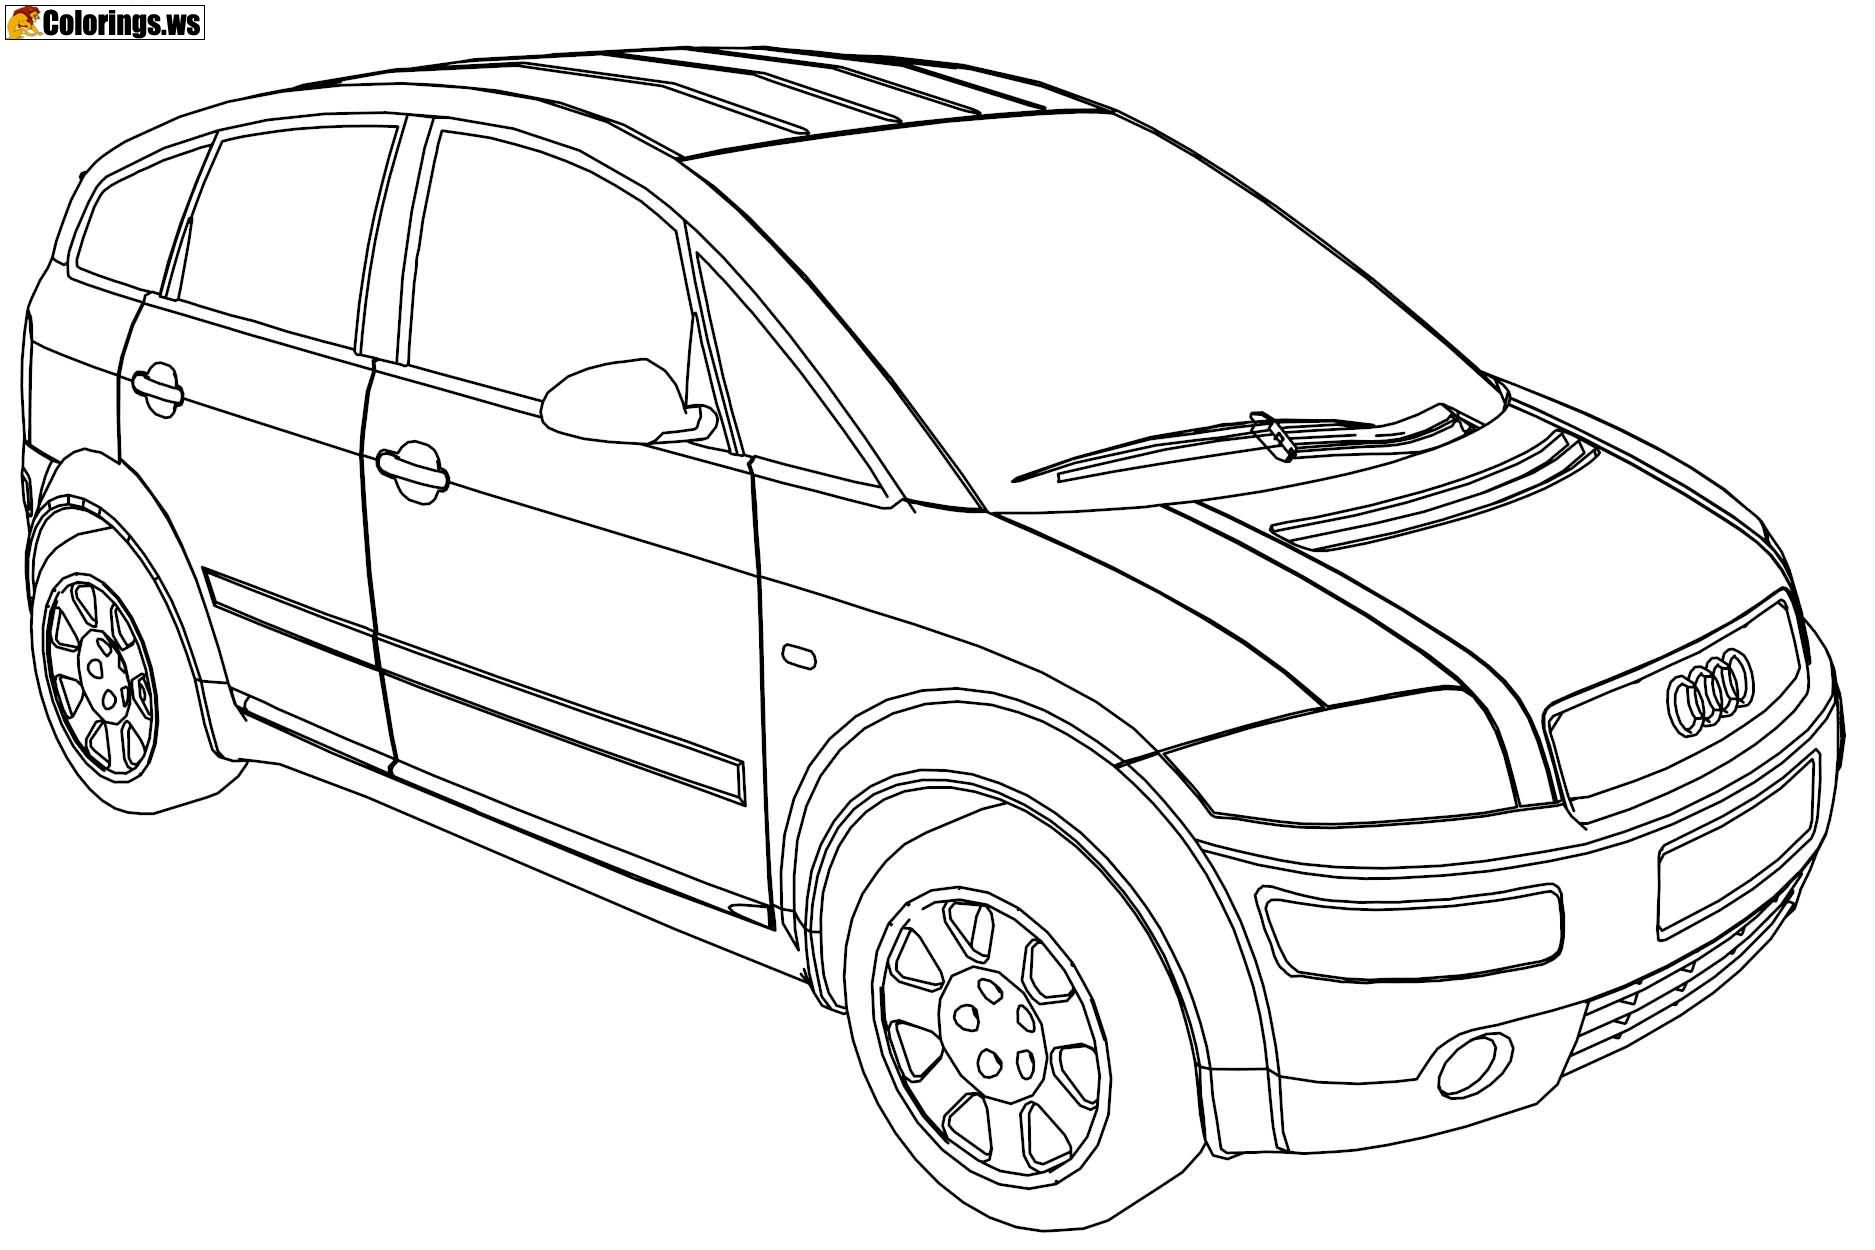 Audi Car Coloring Pages Car Coloring Pages Over Time They